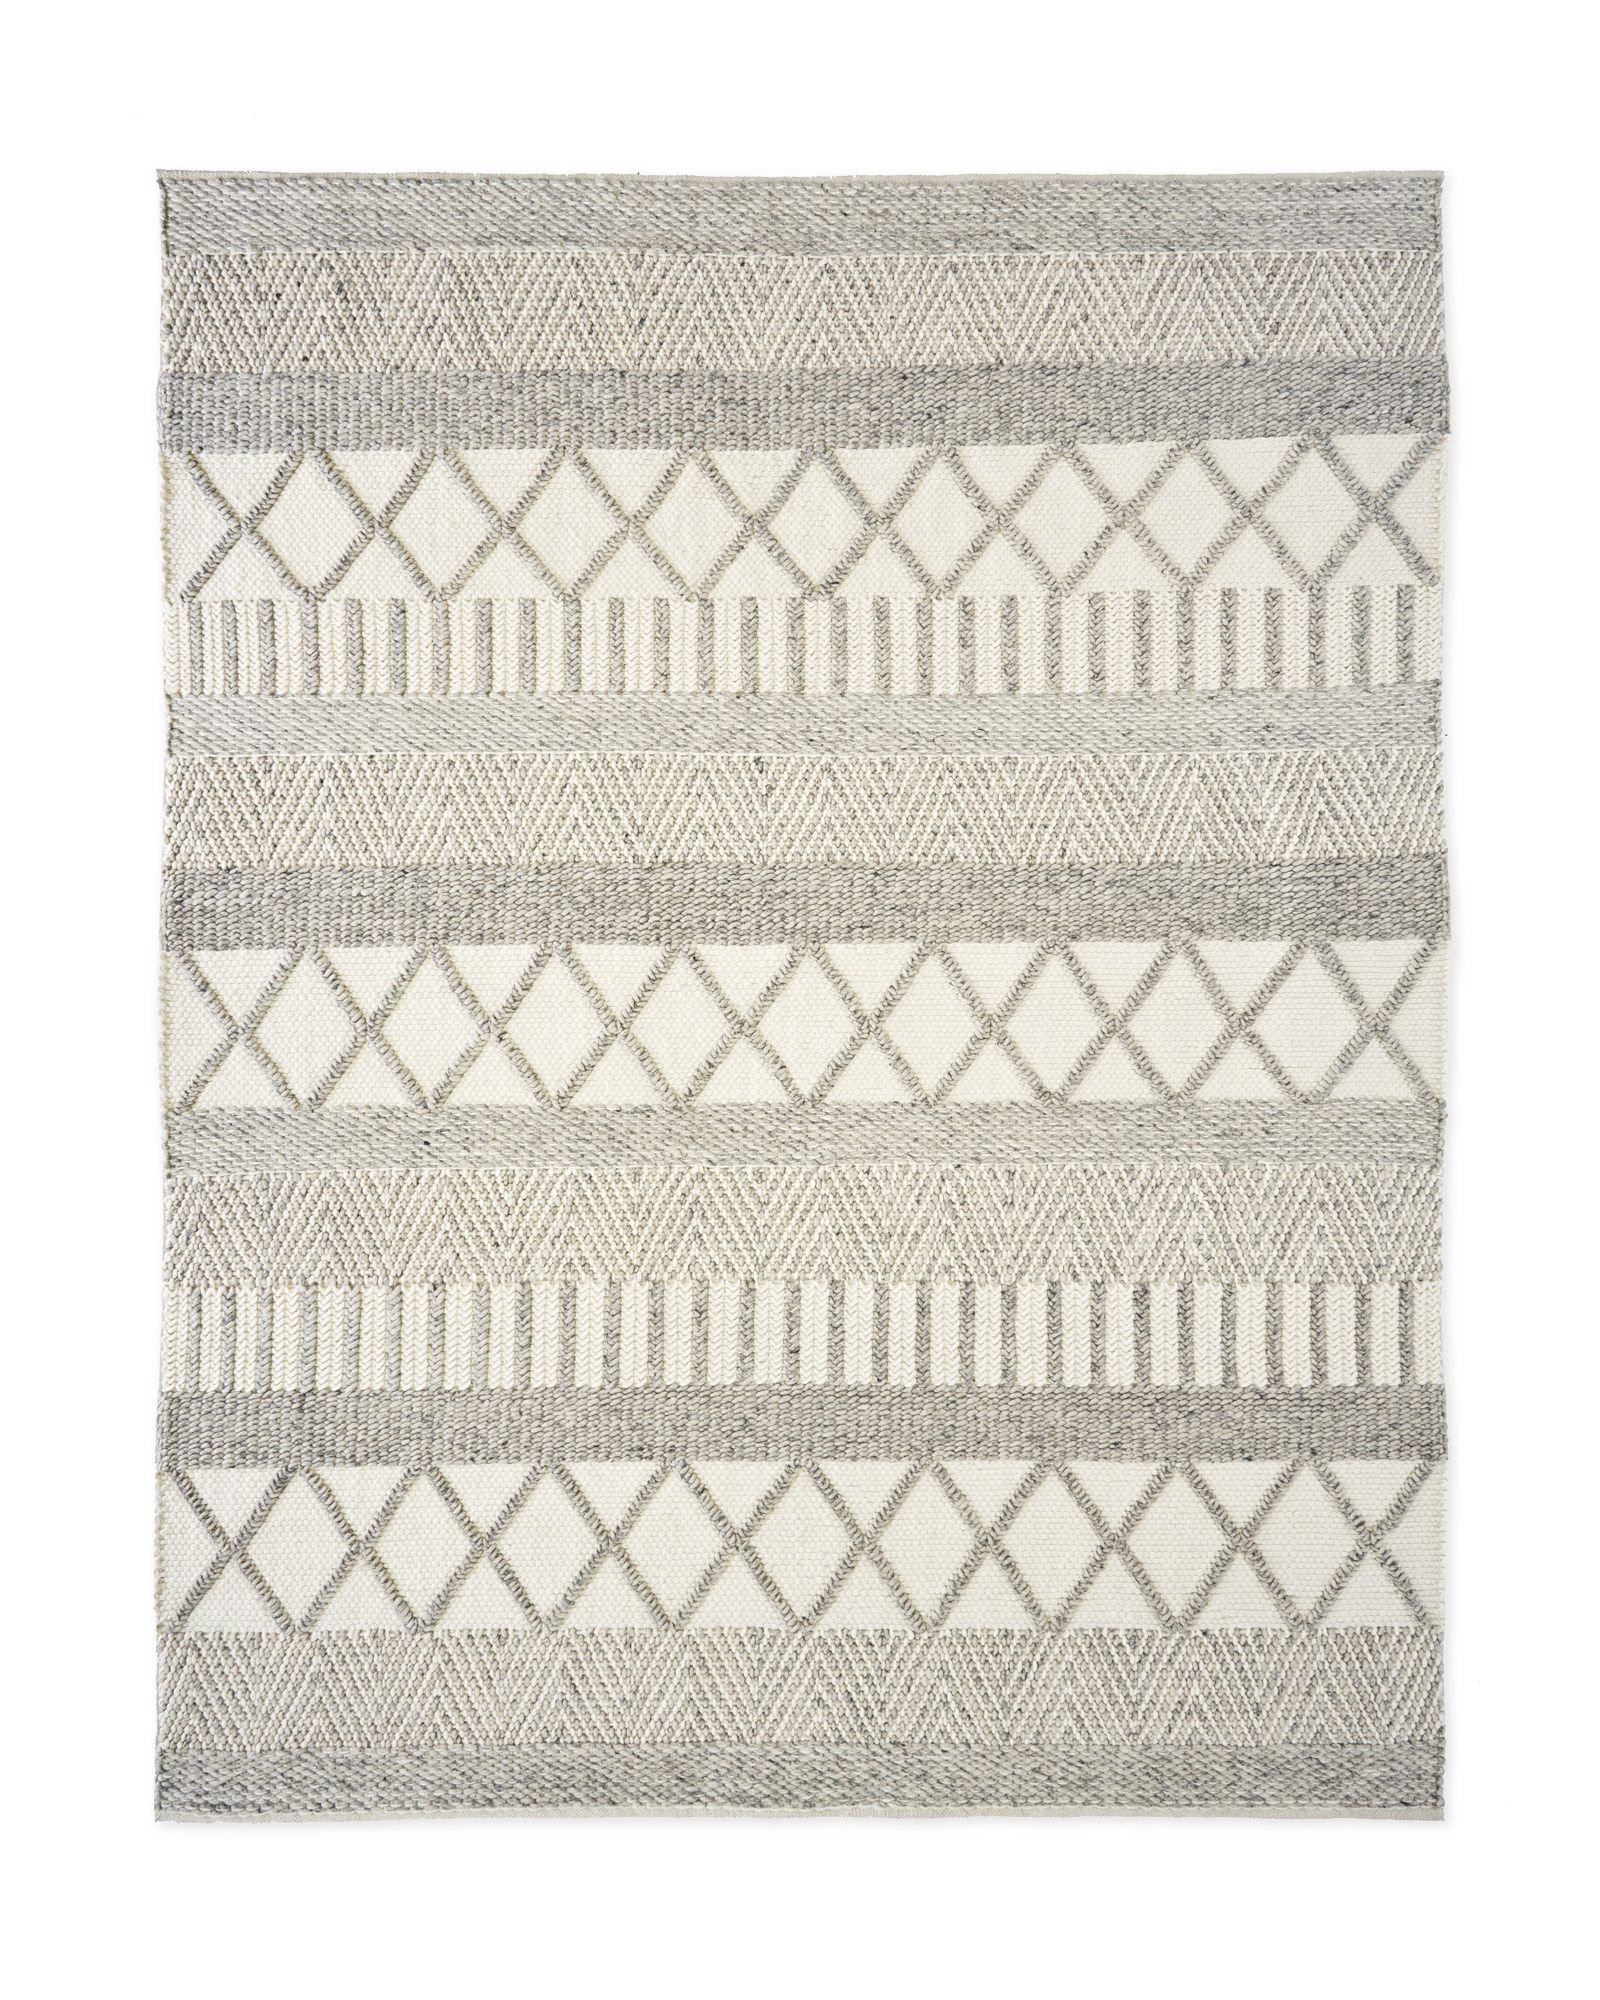 Wool Kitchen Rugs - Area Rug Ideas